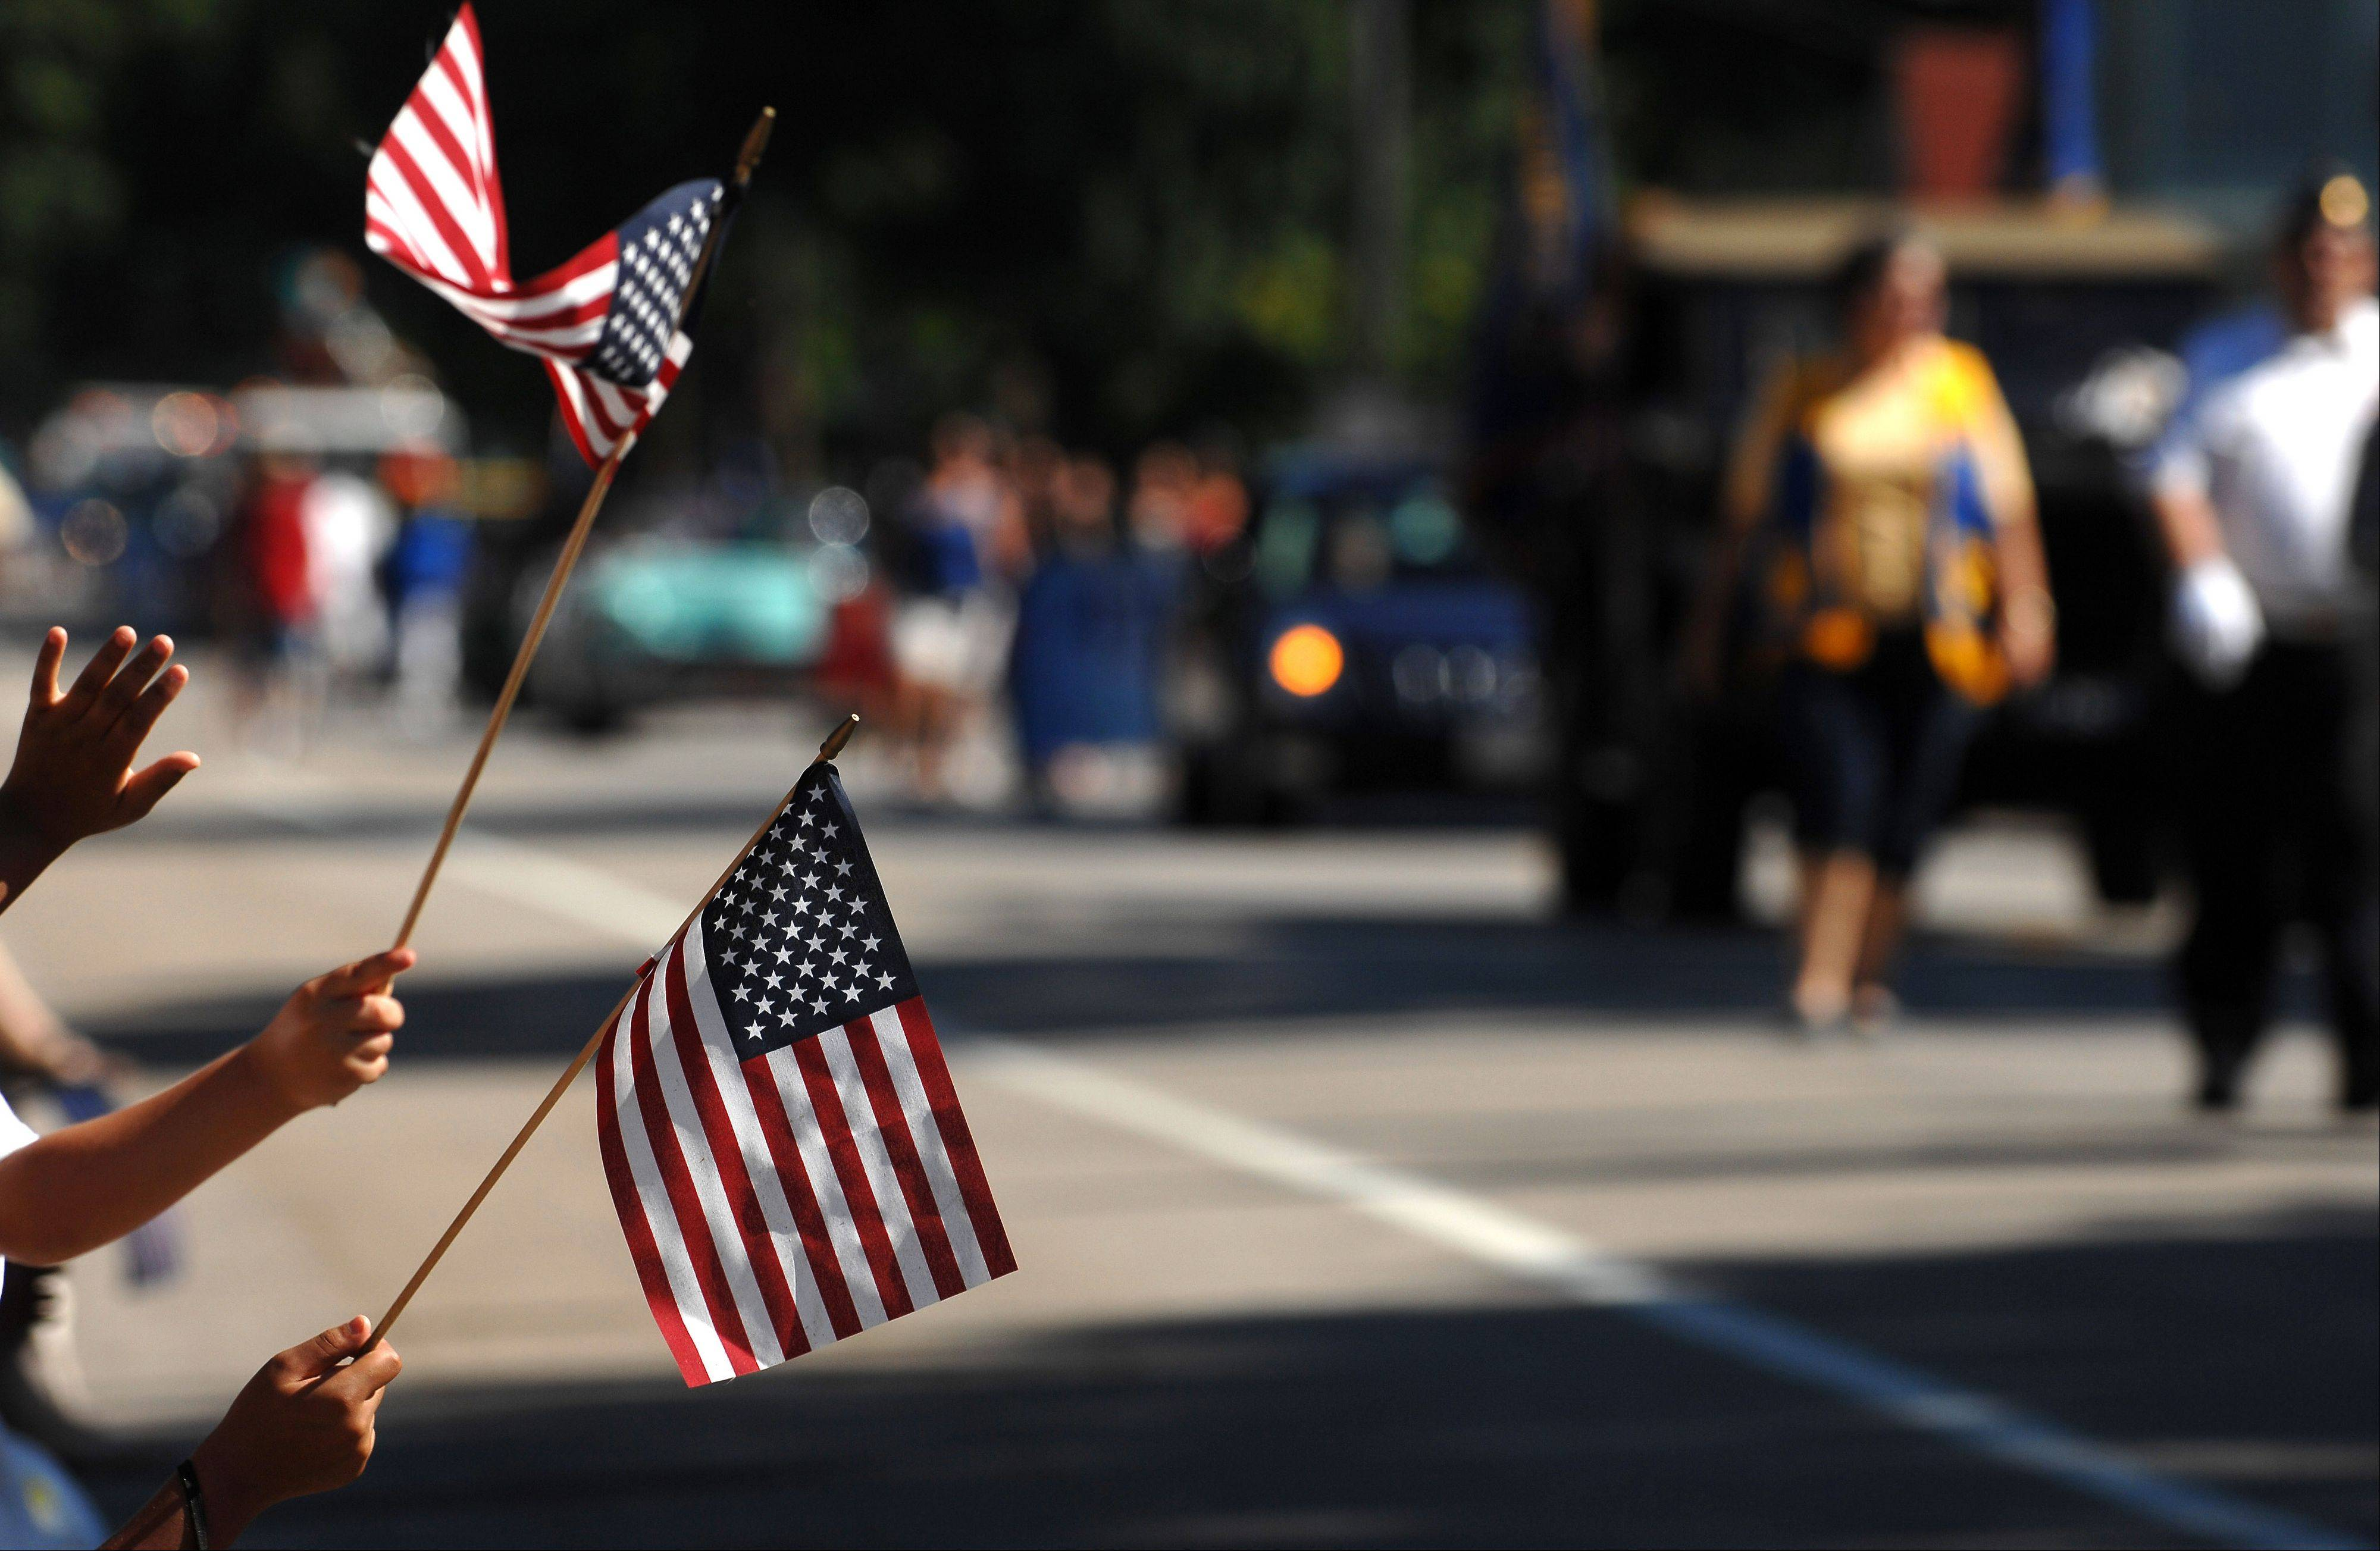 Spectators wave hands and flags during Elgin's Fourth of July parade Monday.